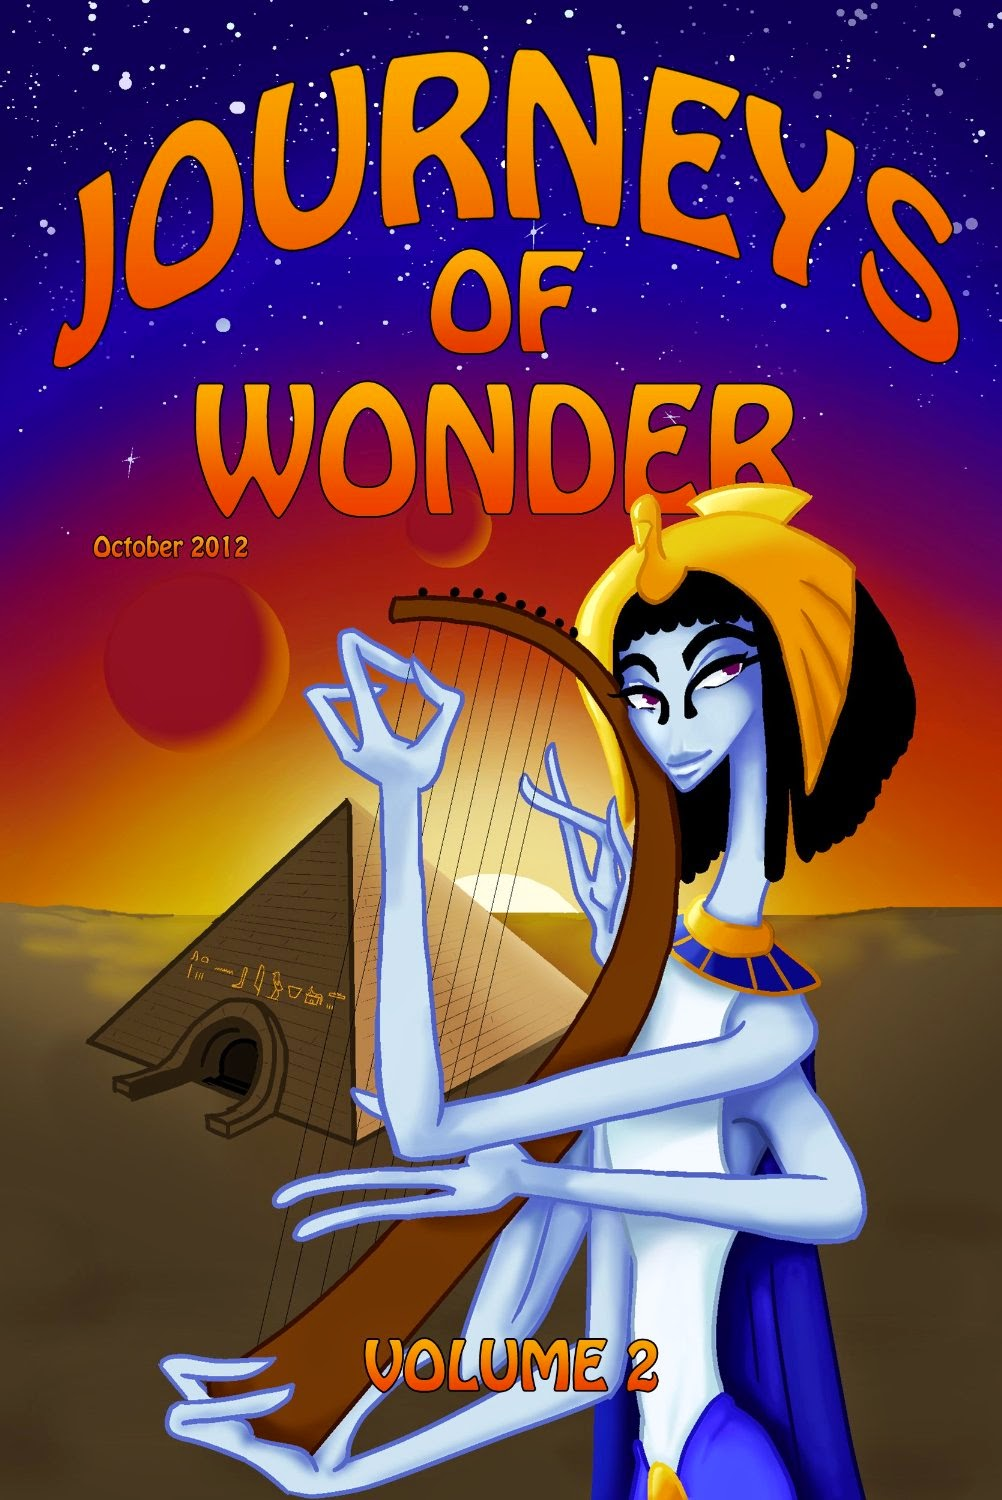 http://www.amazon.com/Journeys-Wonder-2-Trysta-Bissett-ebook/dp/B009SNLA3G/